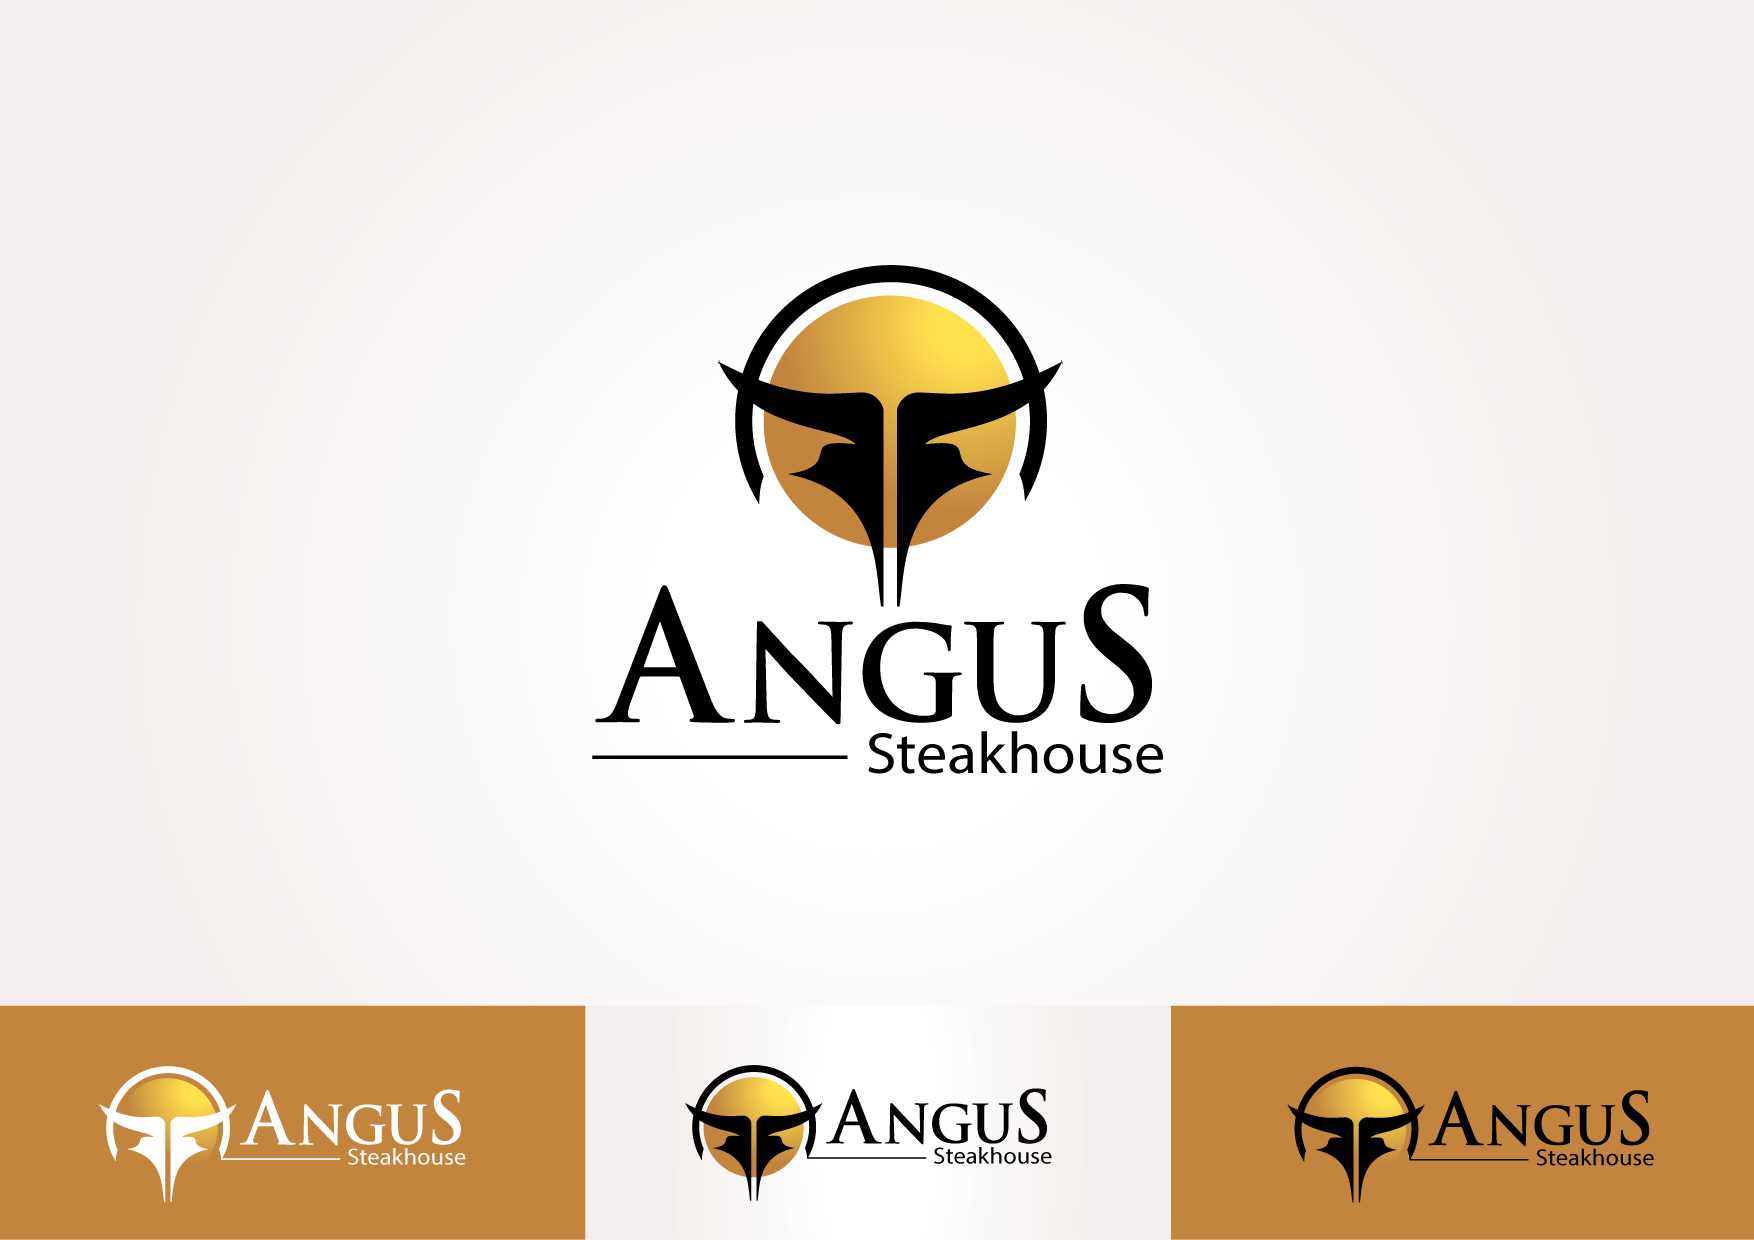 Logo Design by lovag - Entry No. 17 in the Logo Design Contest Imaginative Custom Design for Angus Steakhouse.